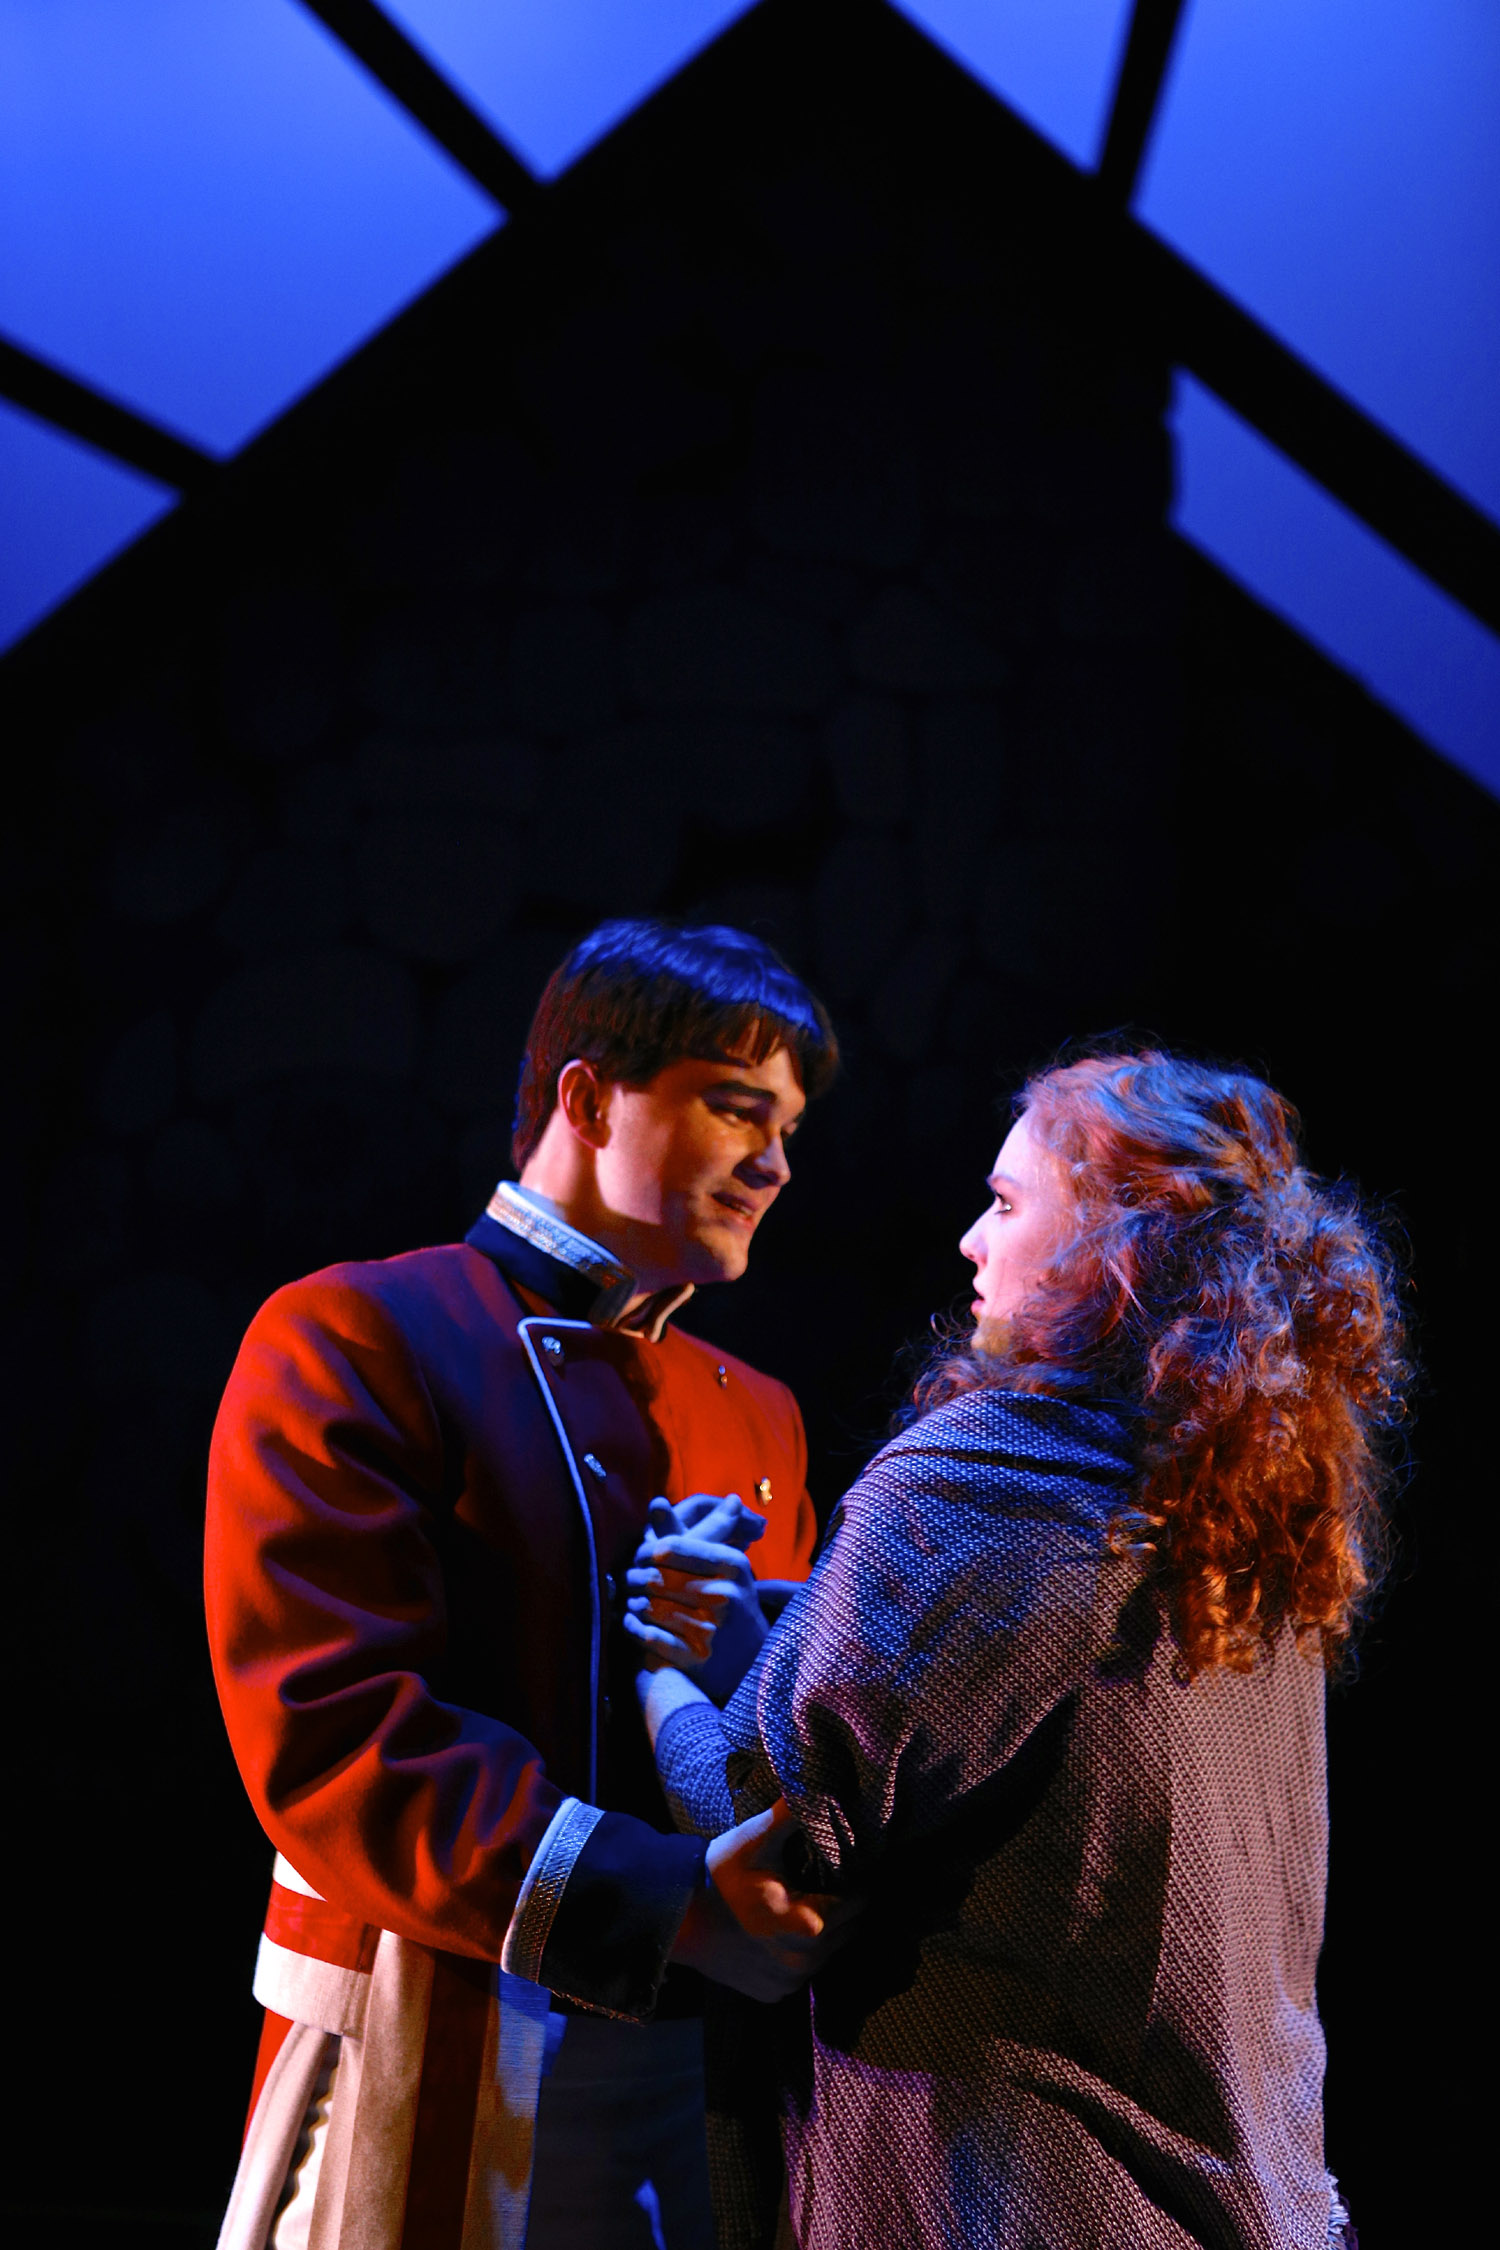 Derek Boyer Goh (Lt. Yolland) and Whitney Crowder (Maire) in the SU Drama production of Translations. Photo by Michael Davis